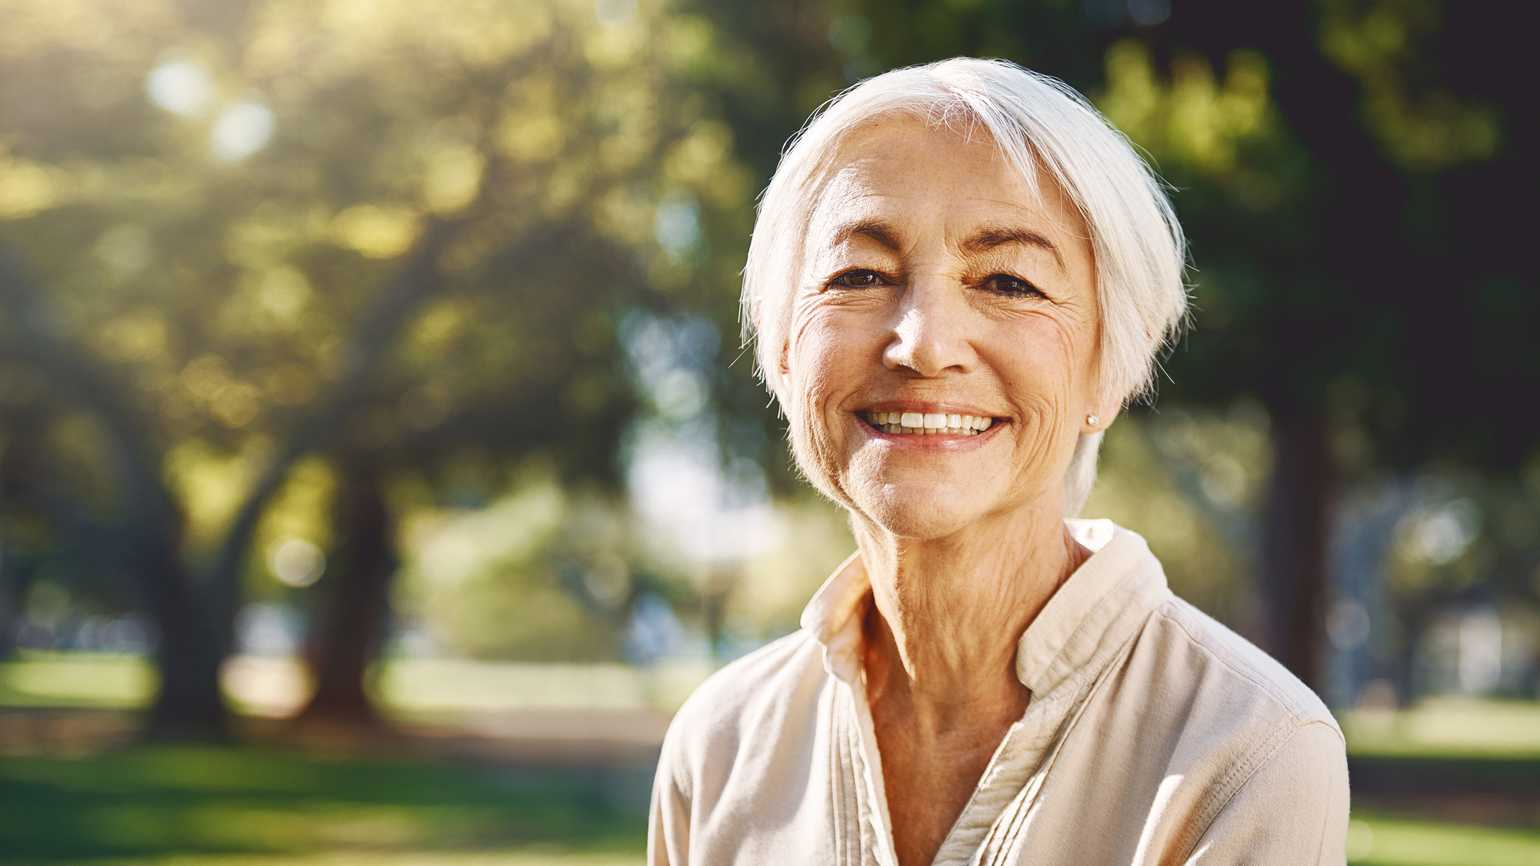 A woman smiling as she spends time outdoors in the sunlight.